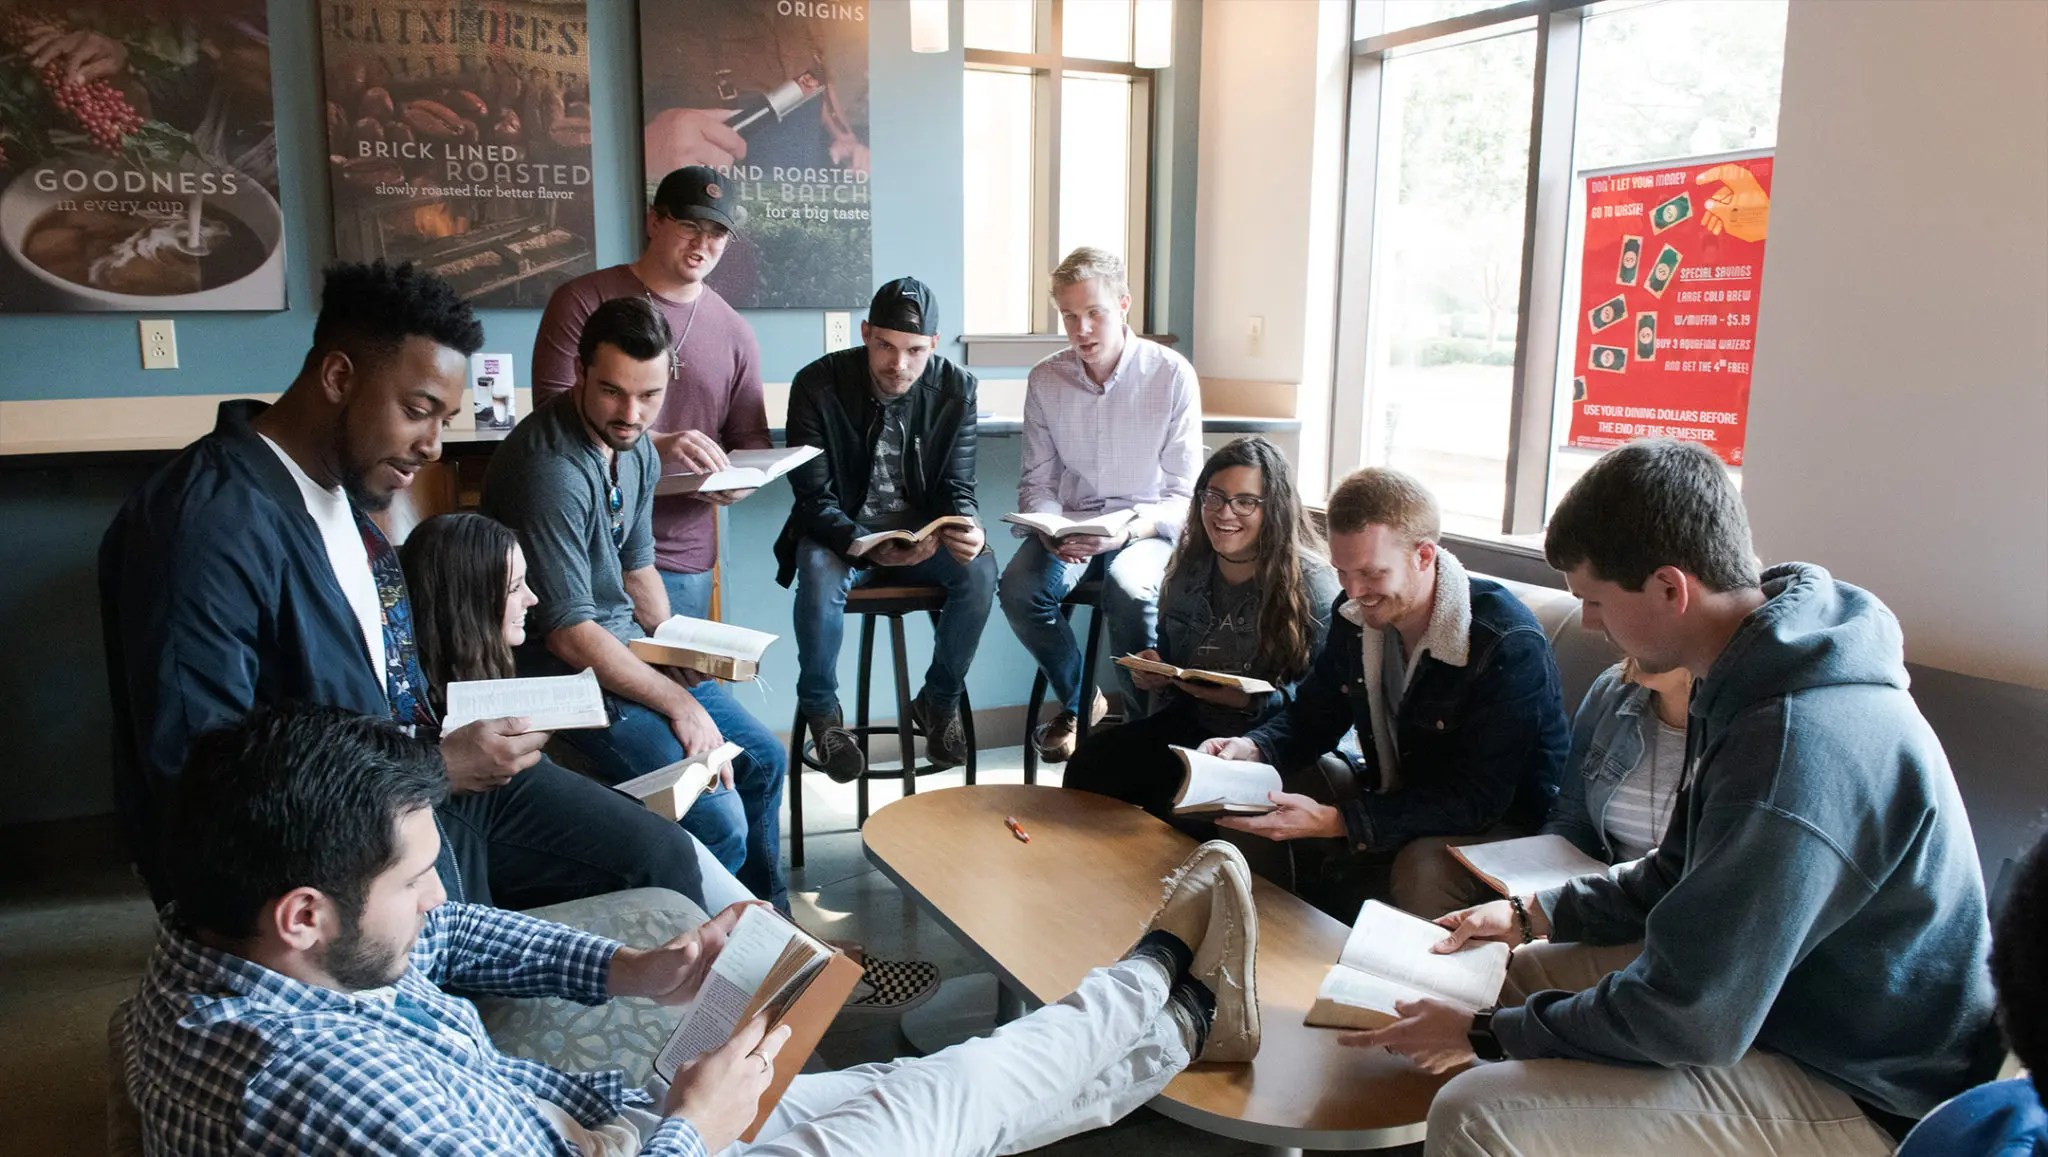 Students gathered around a coffee table in a coffee shop looking through their bibles and in discussion.